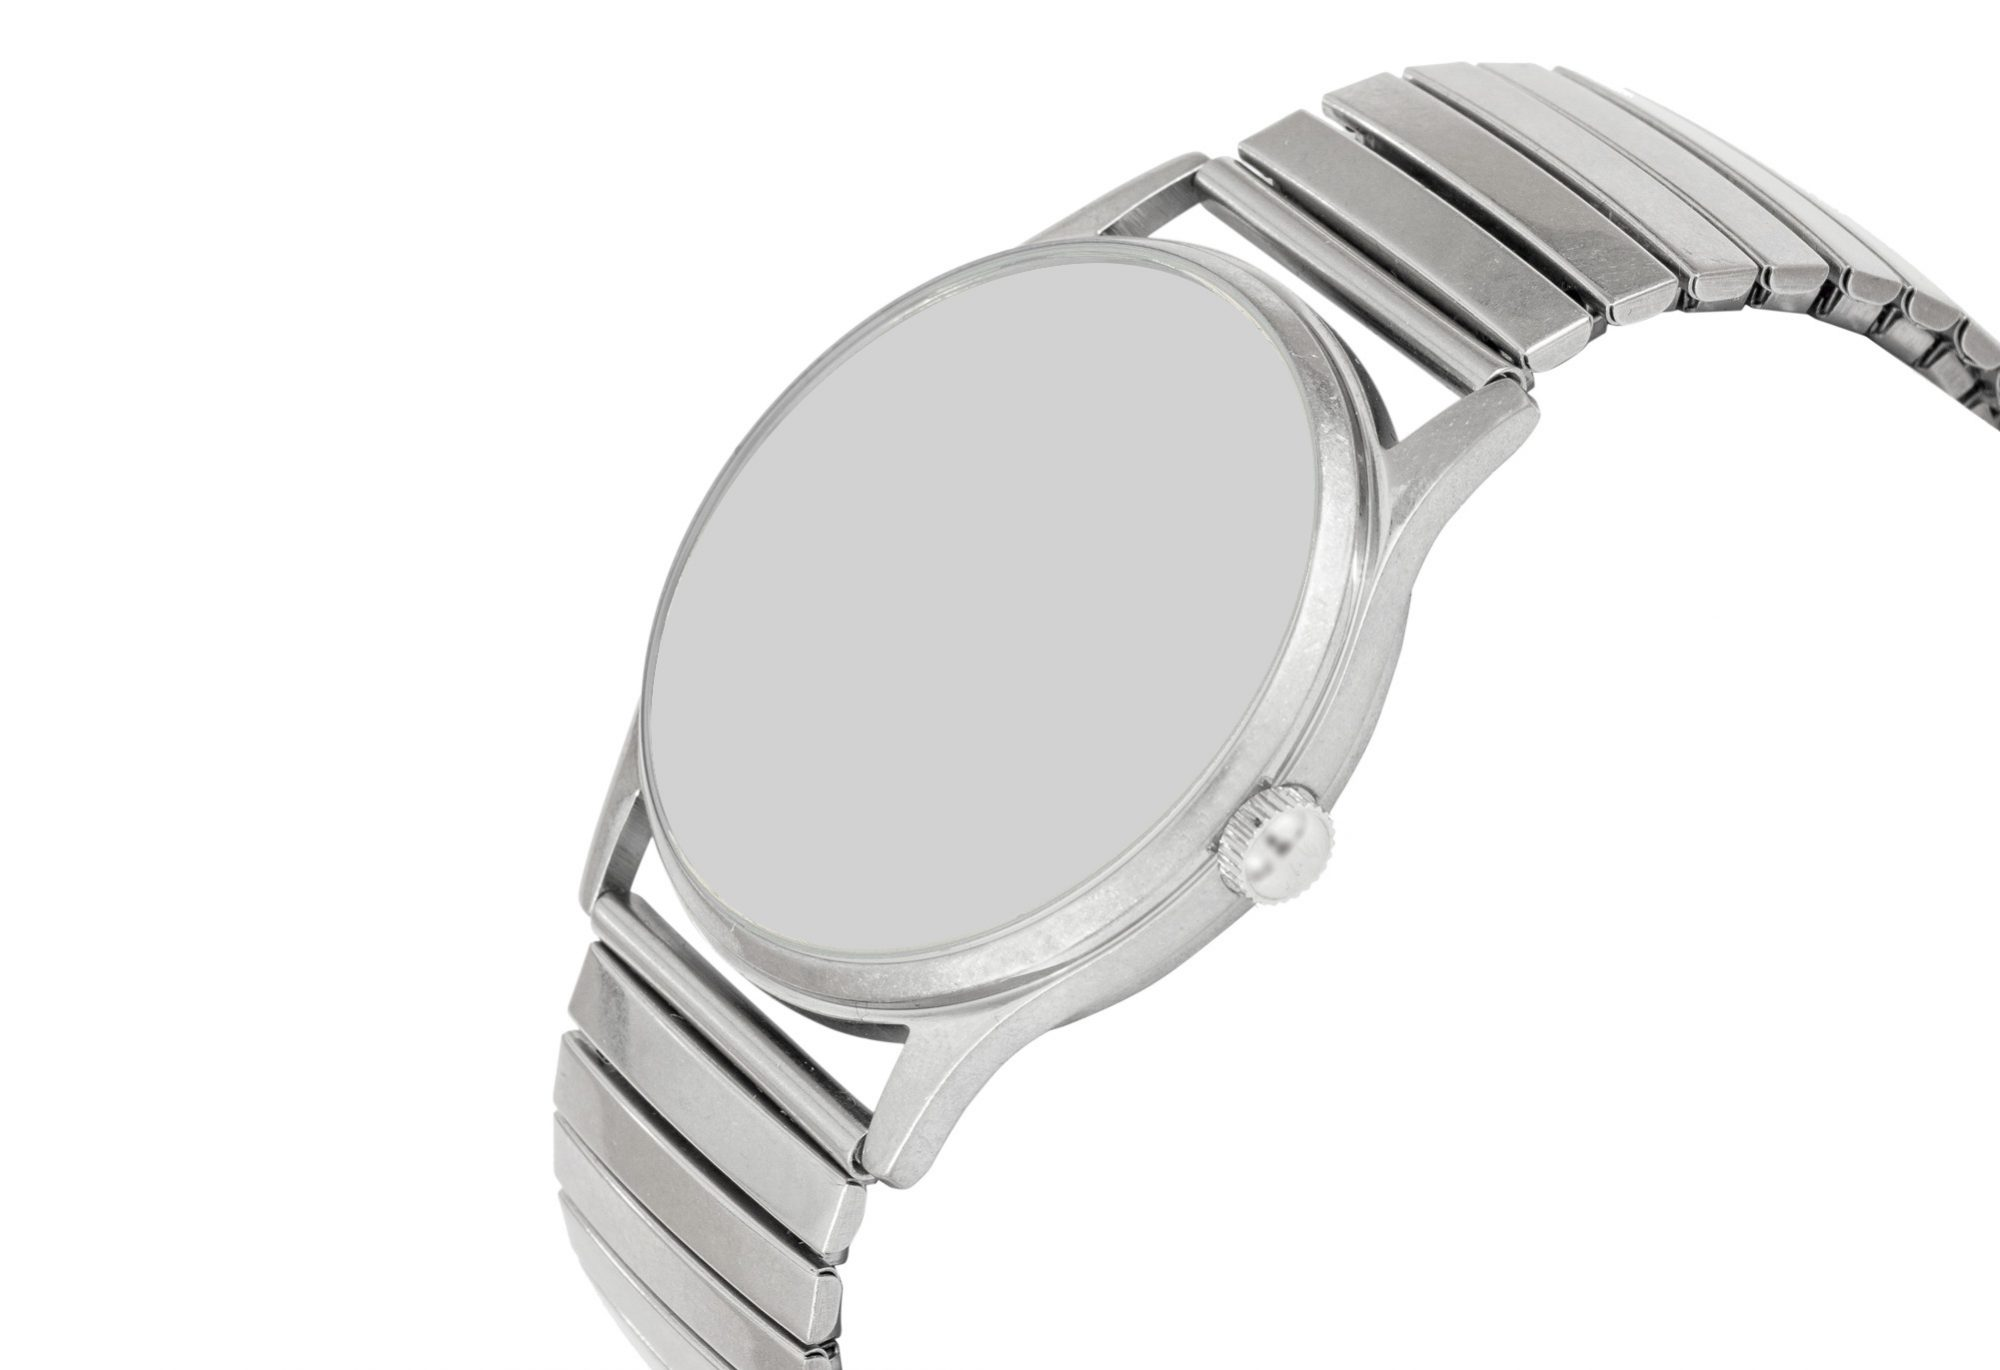 METAL WRISTWATCH BAND <br> Stainless steel